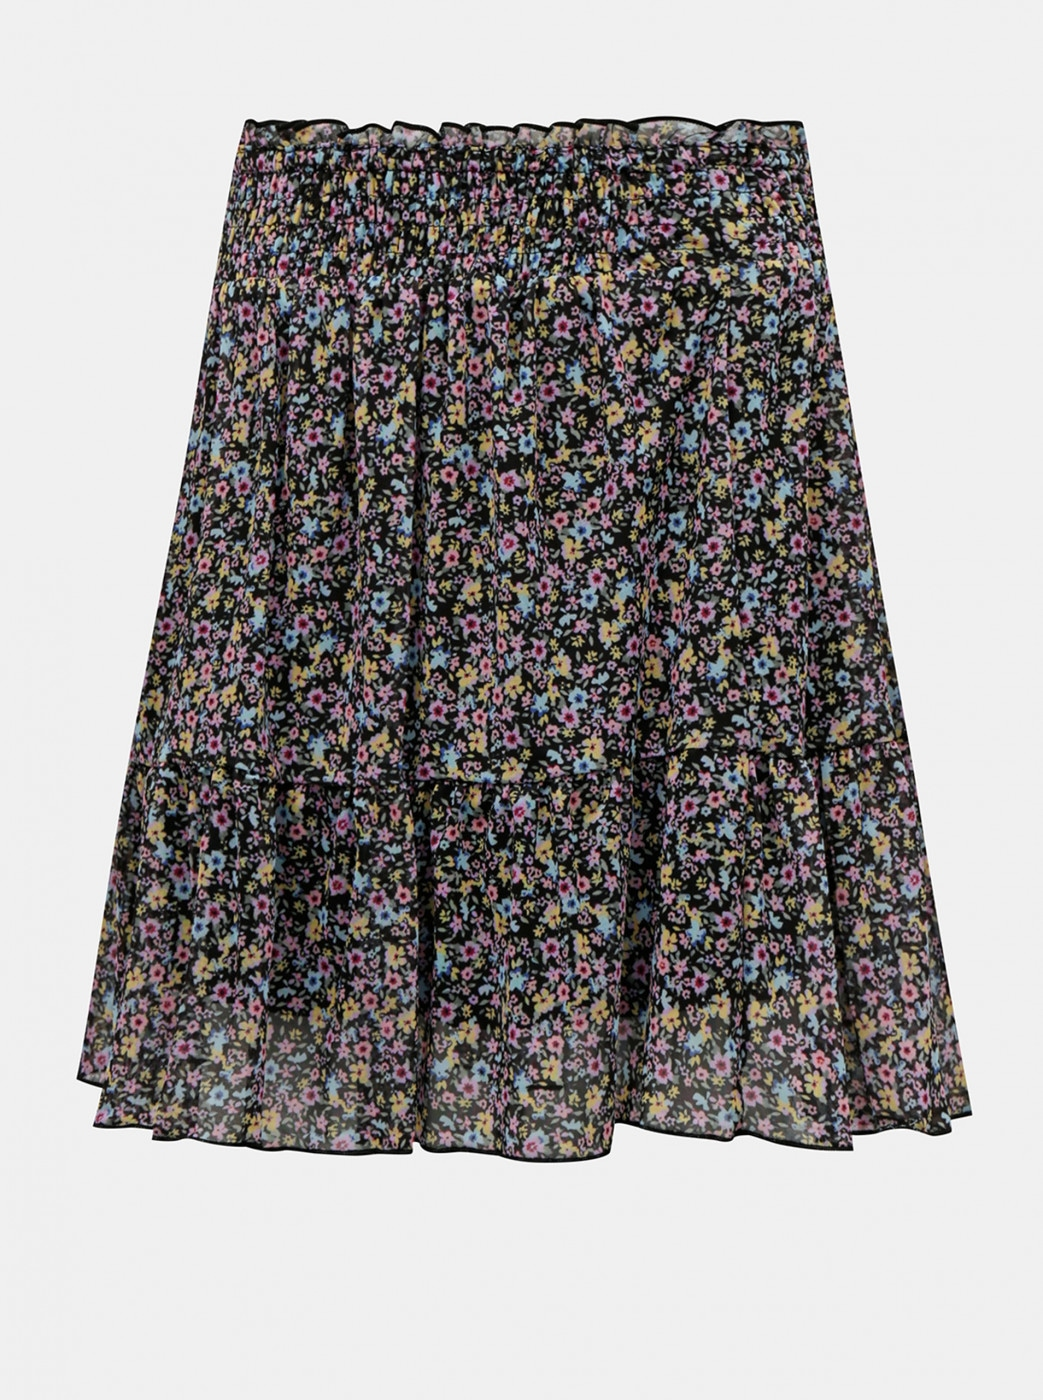 TALLY WEiJL Black Floral Skirt